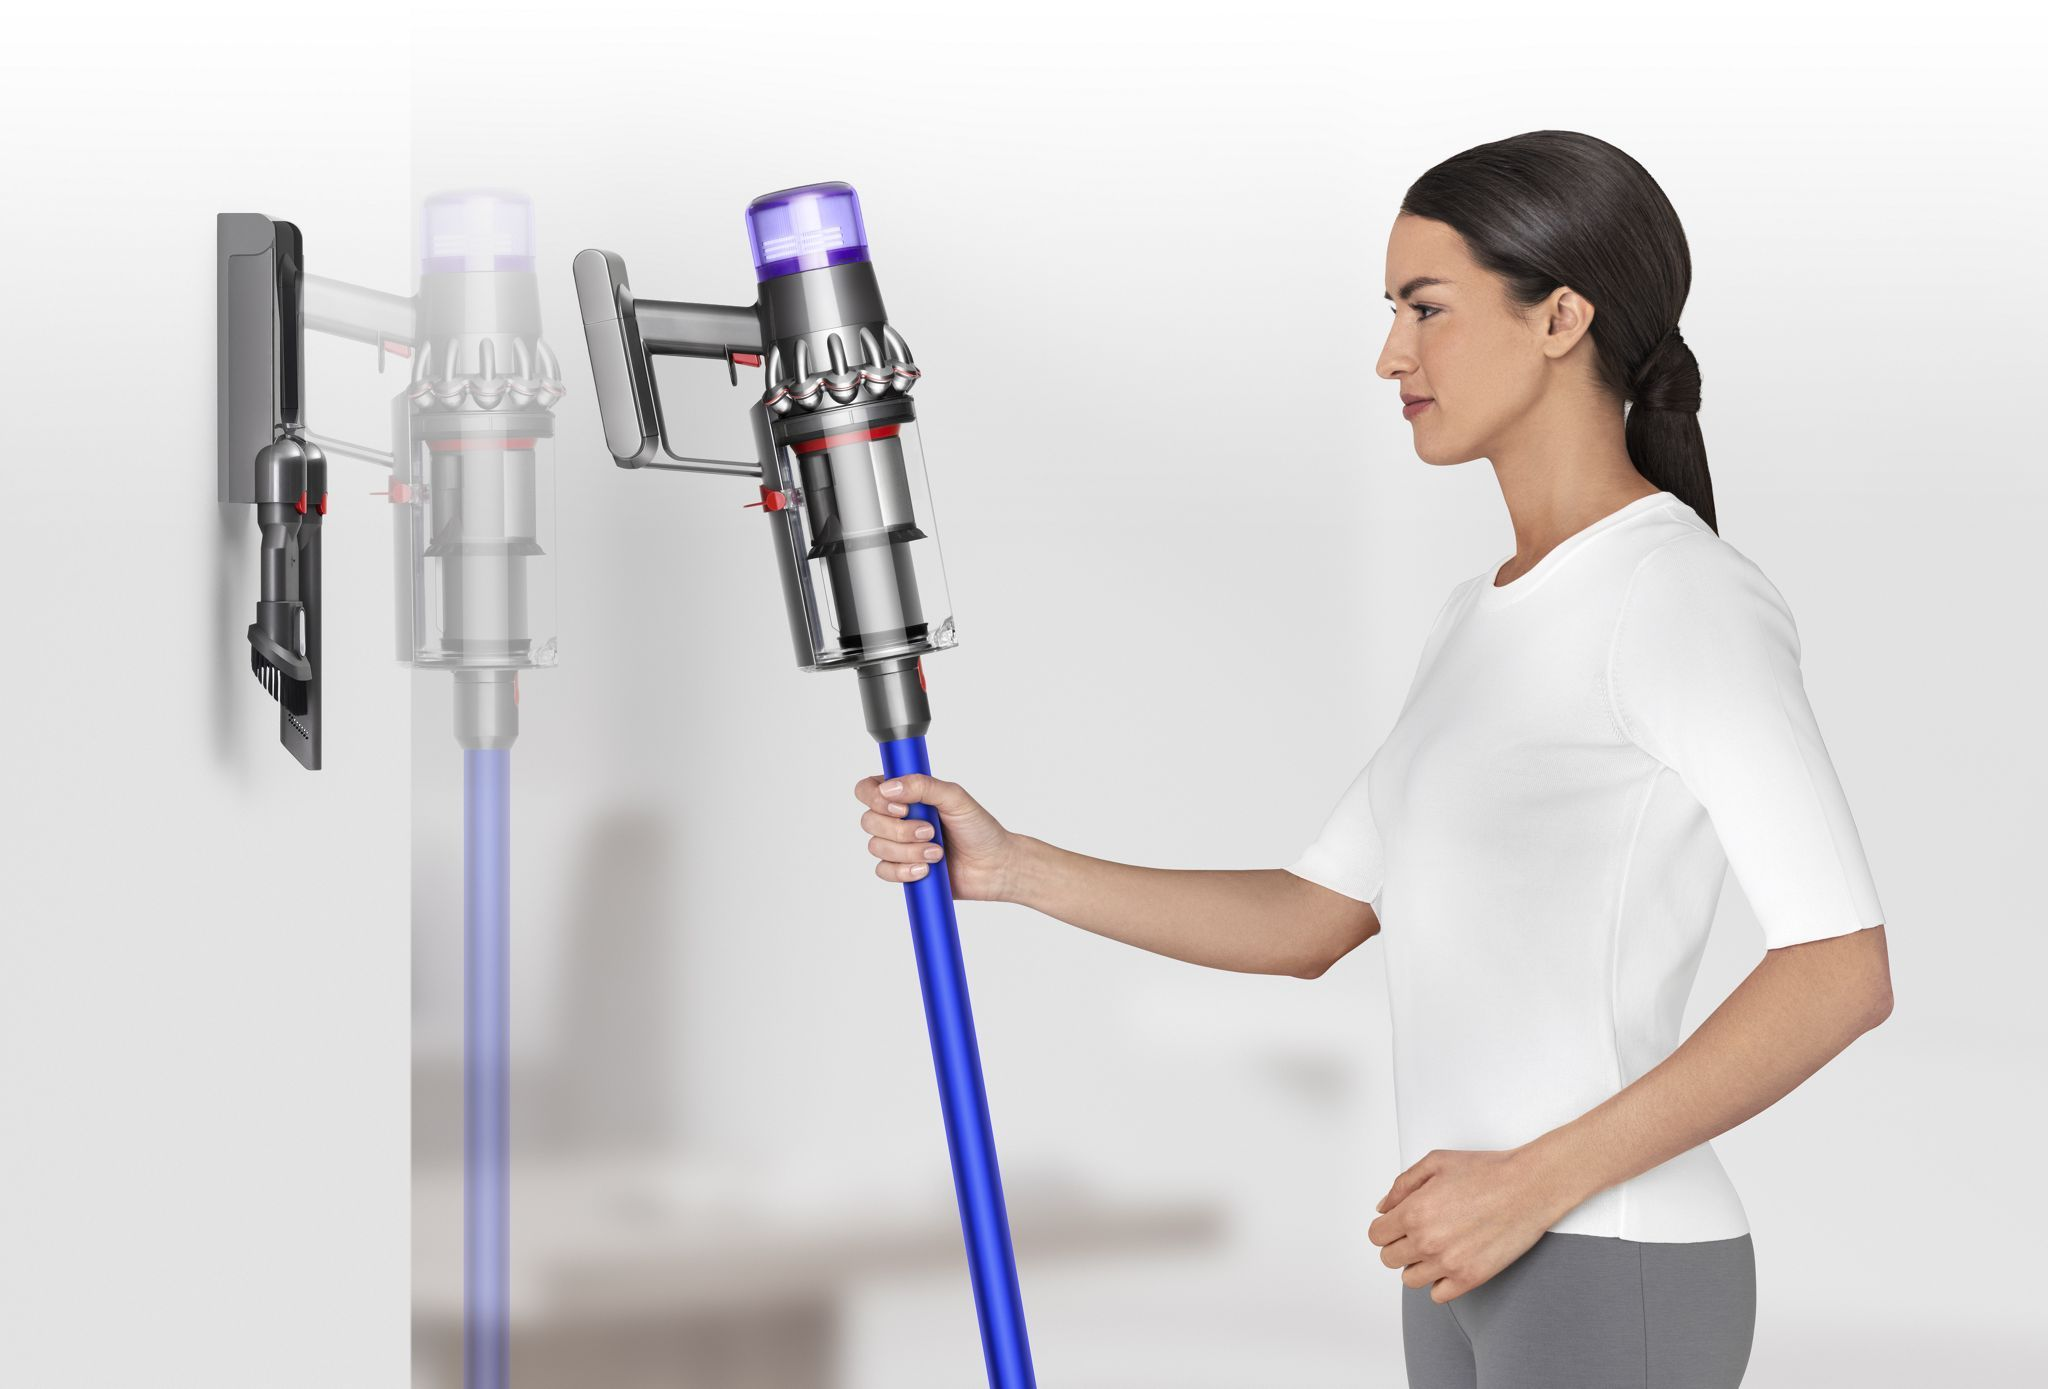 Dyson V11™ cordless vacuum cleaner Overview Dyson